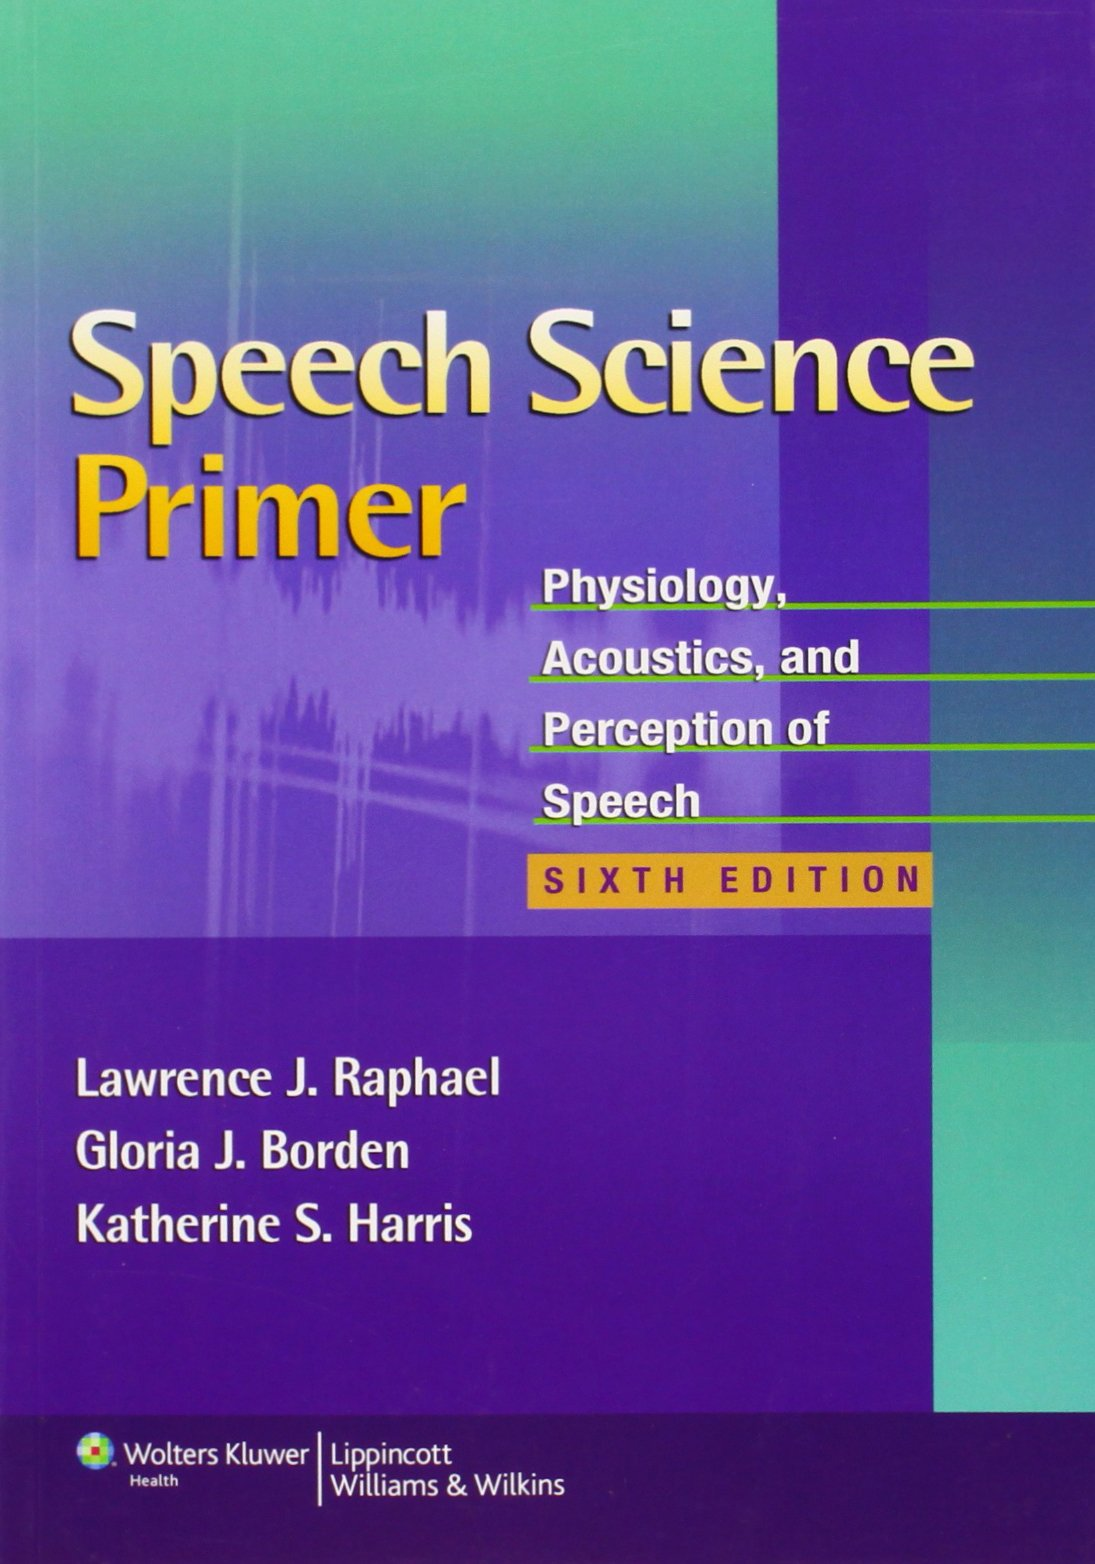 Image OfSpeech Science Primer: Physiology, Acoustics, And Perception Of Speech